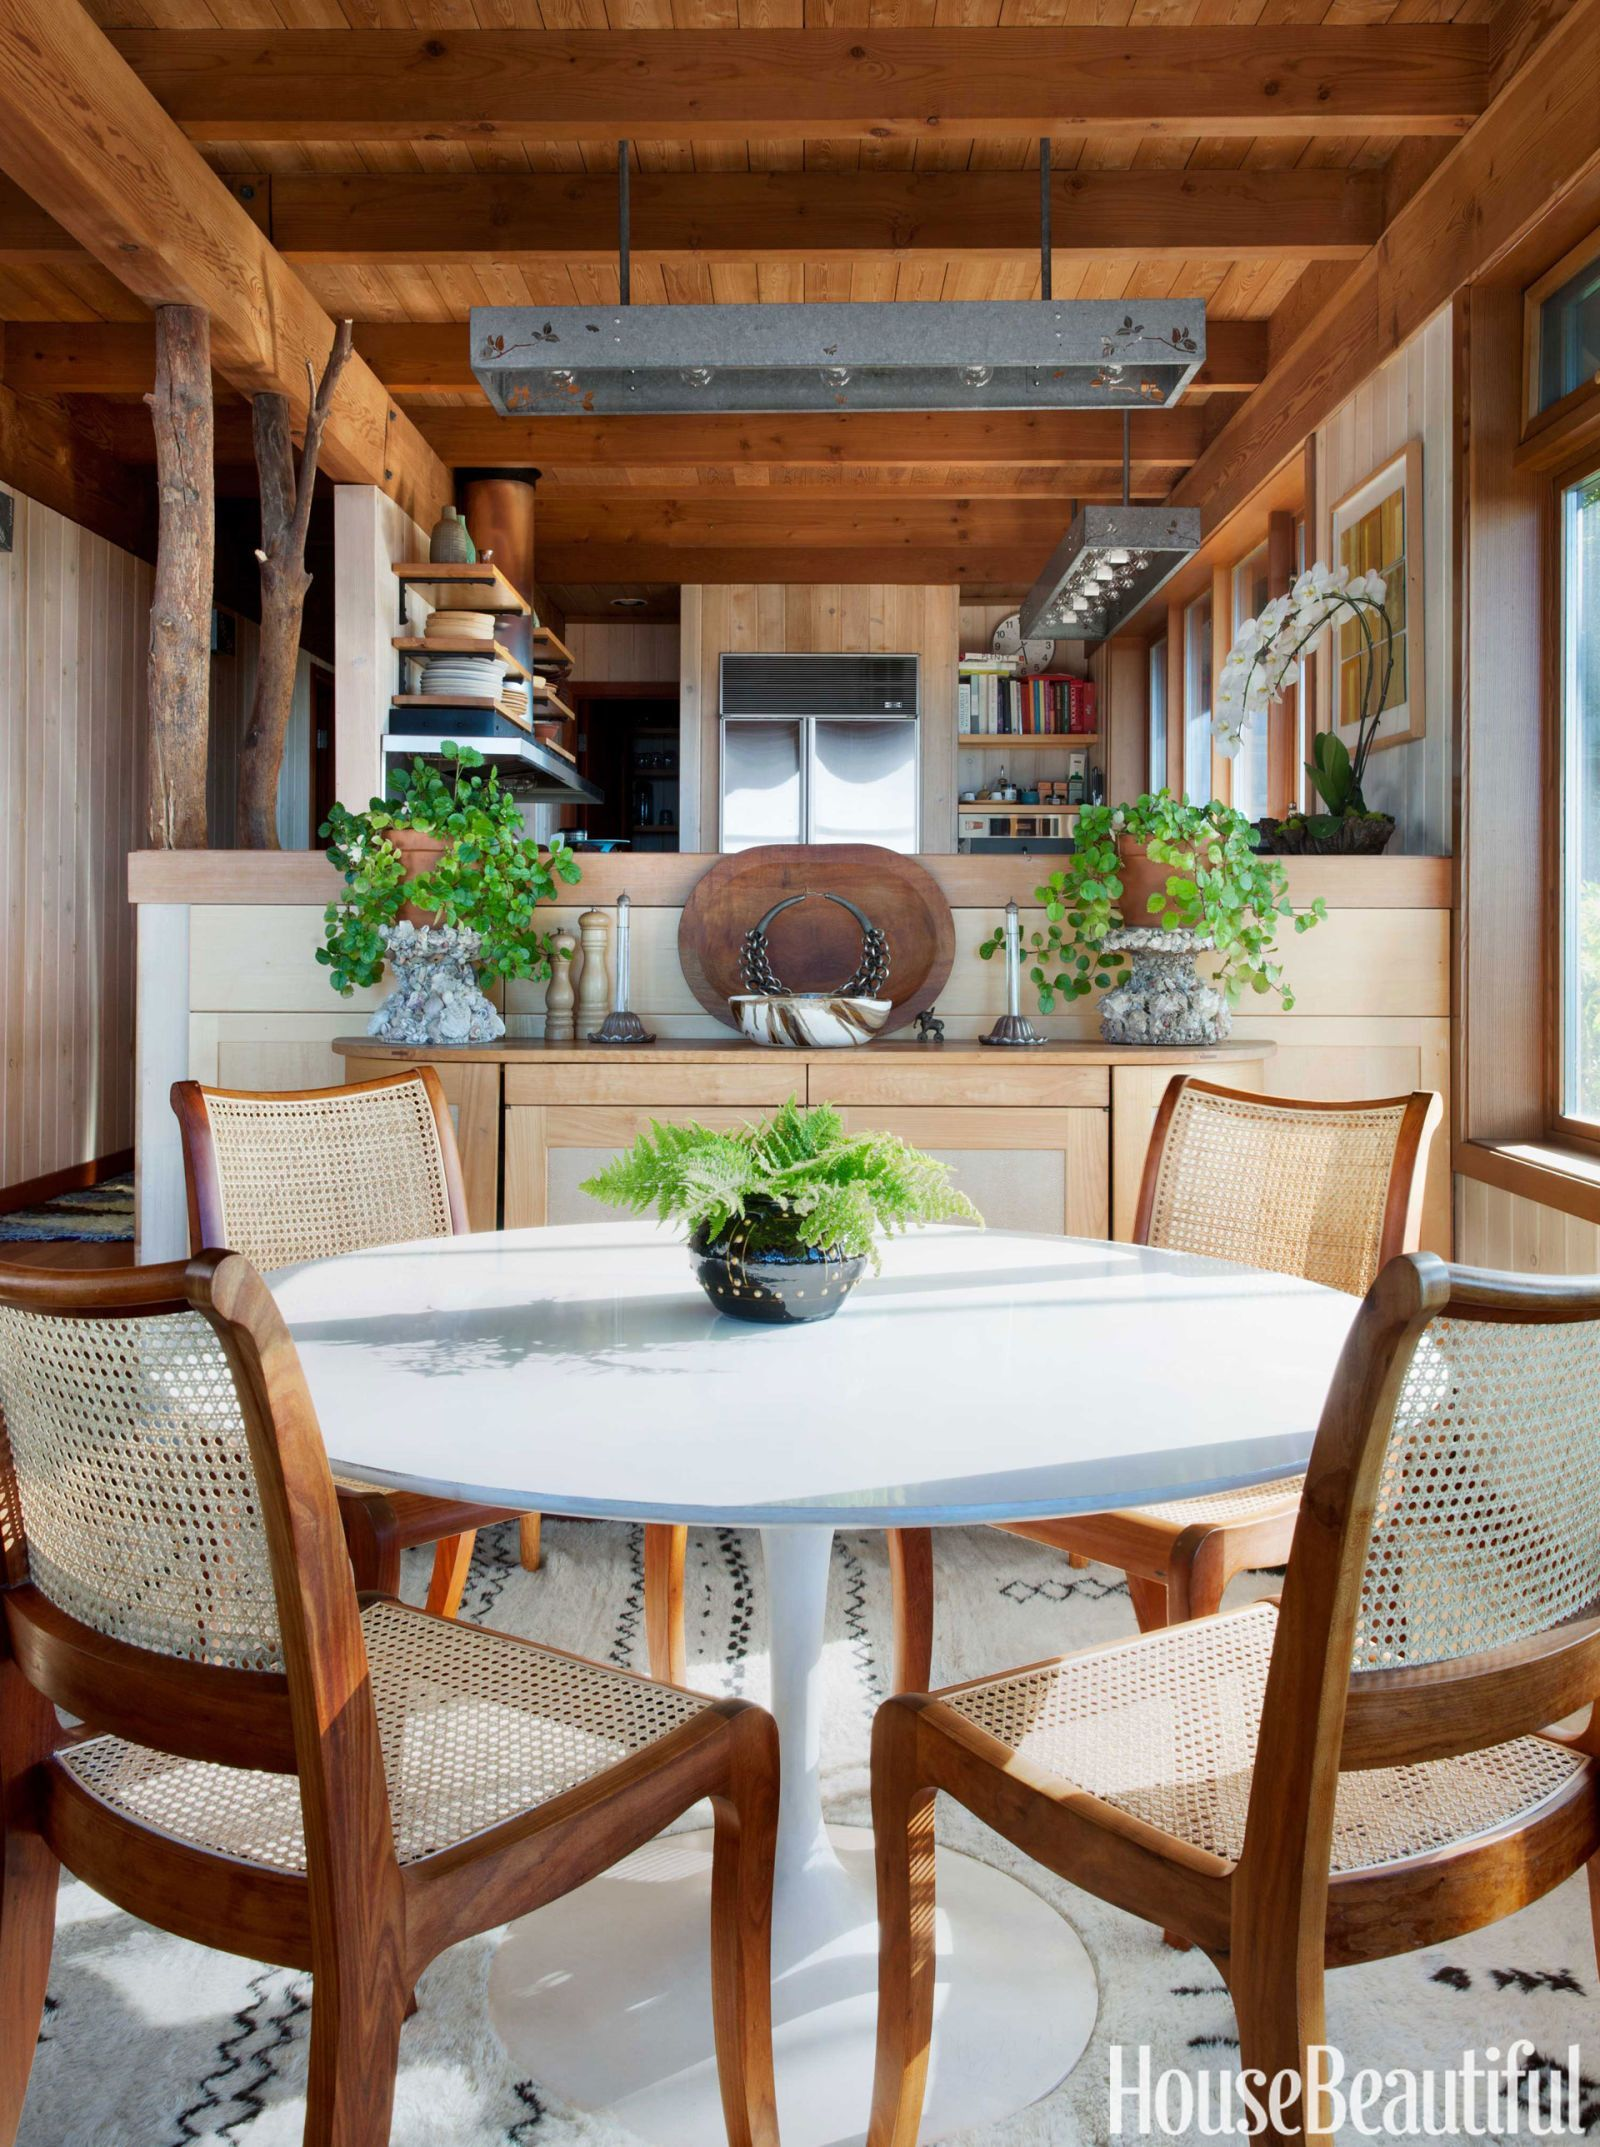 A Warm and Rustic House | Rustic country furniture, House ...